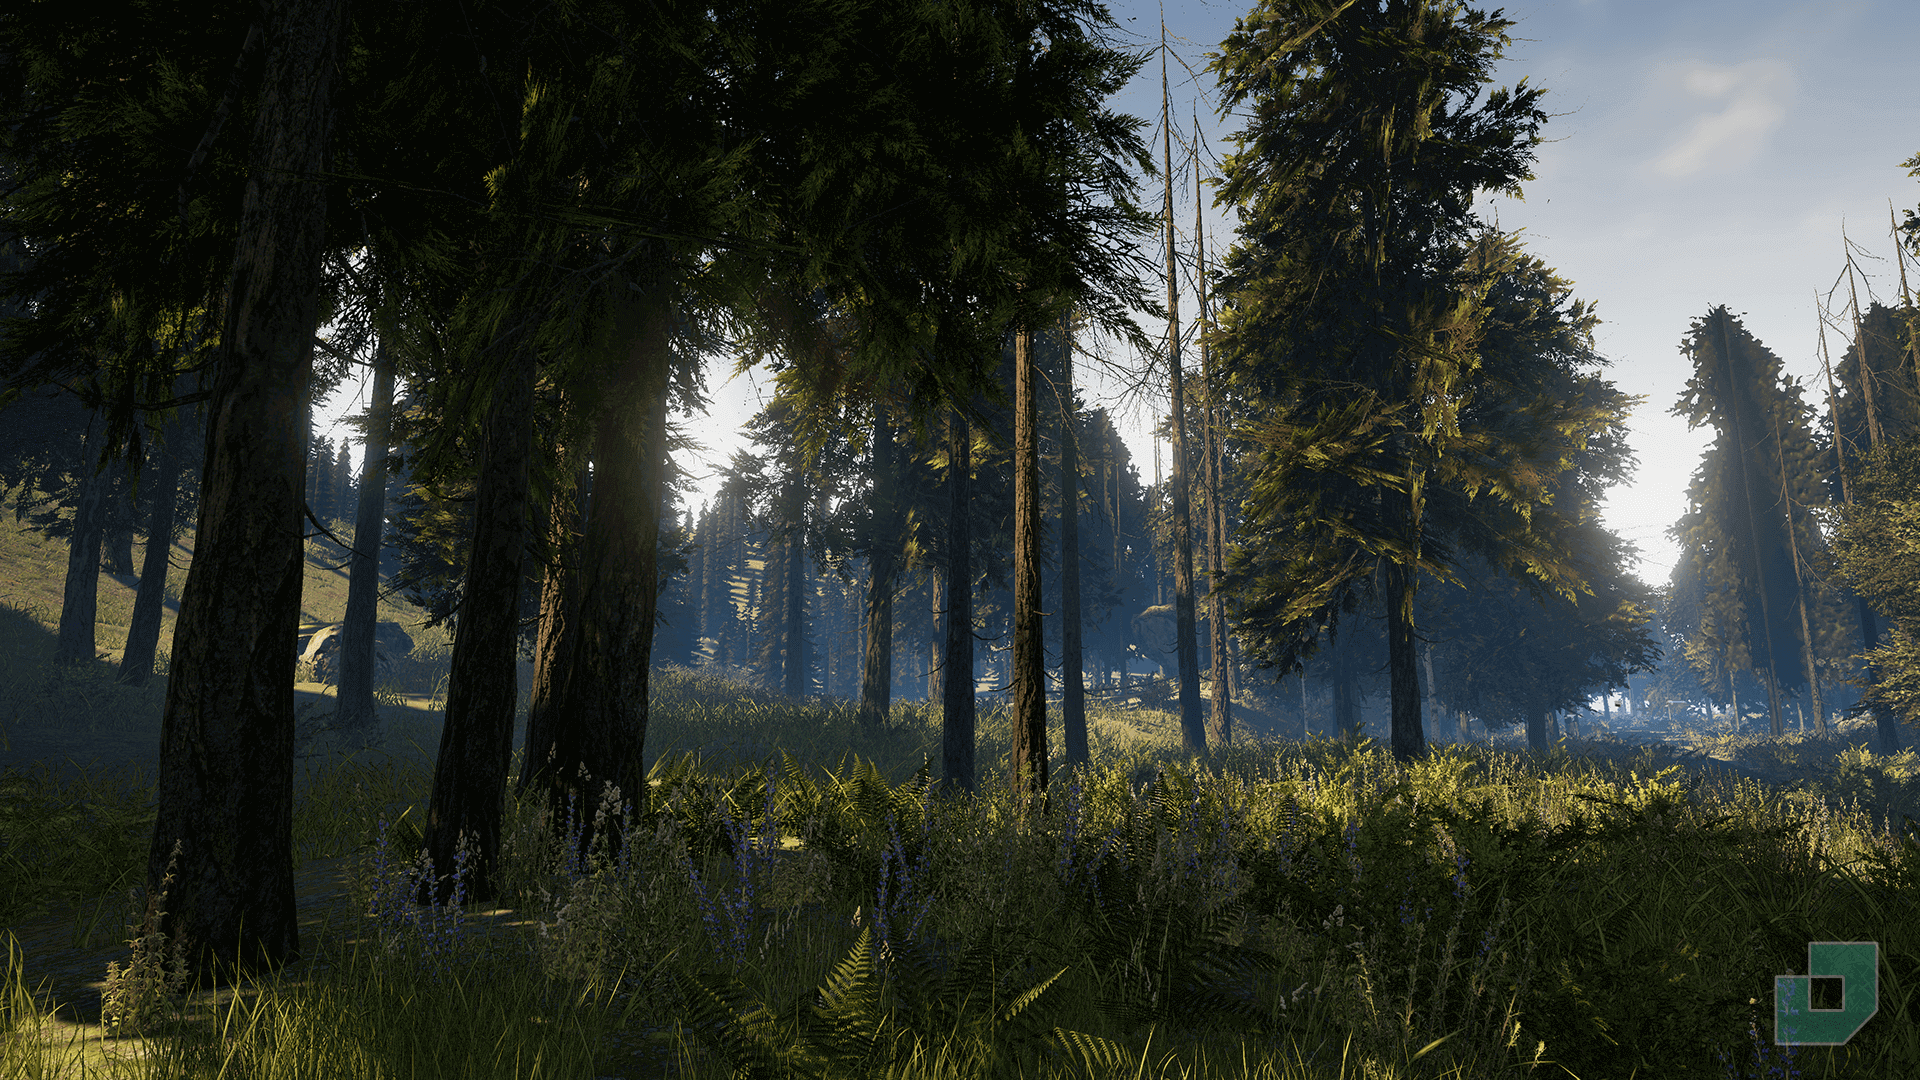 store_LowPolyForest_screenshot_03-1920x1080-a24675a2bd51c38e641f3dd8dc2bc15f.png